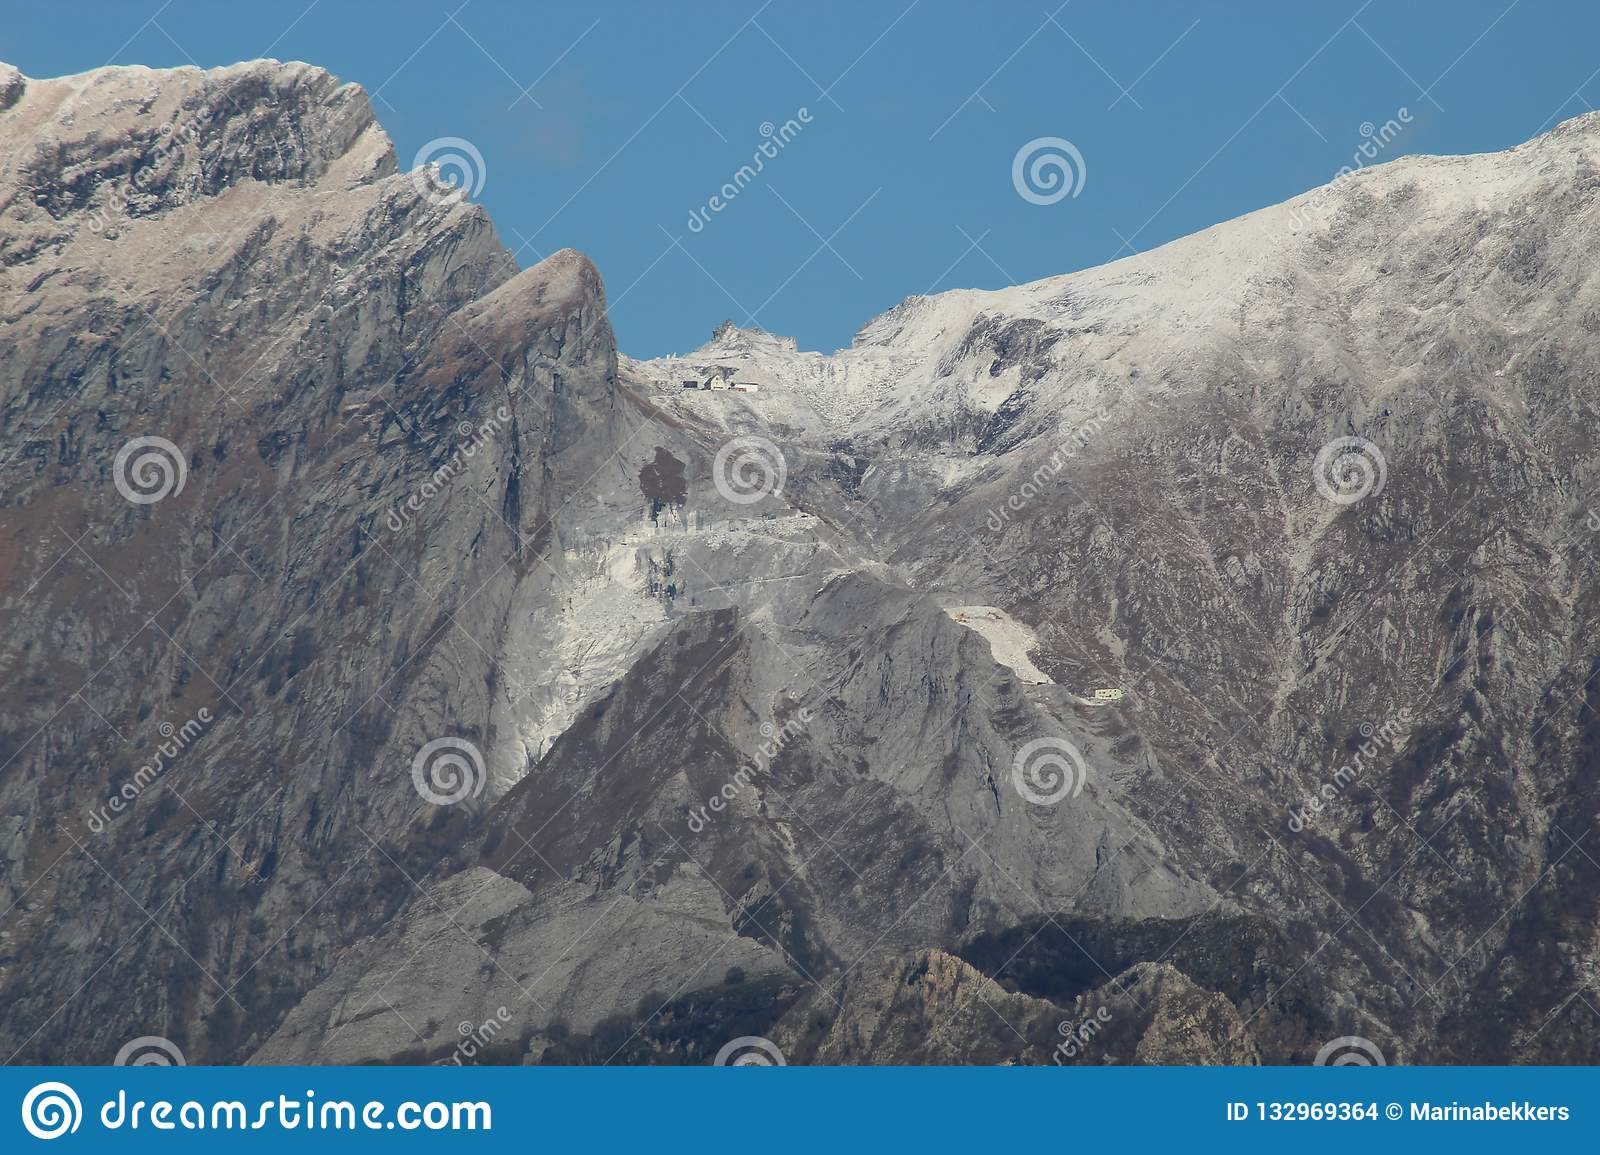 The beautiful landscape and mountains of Italy